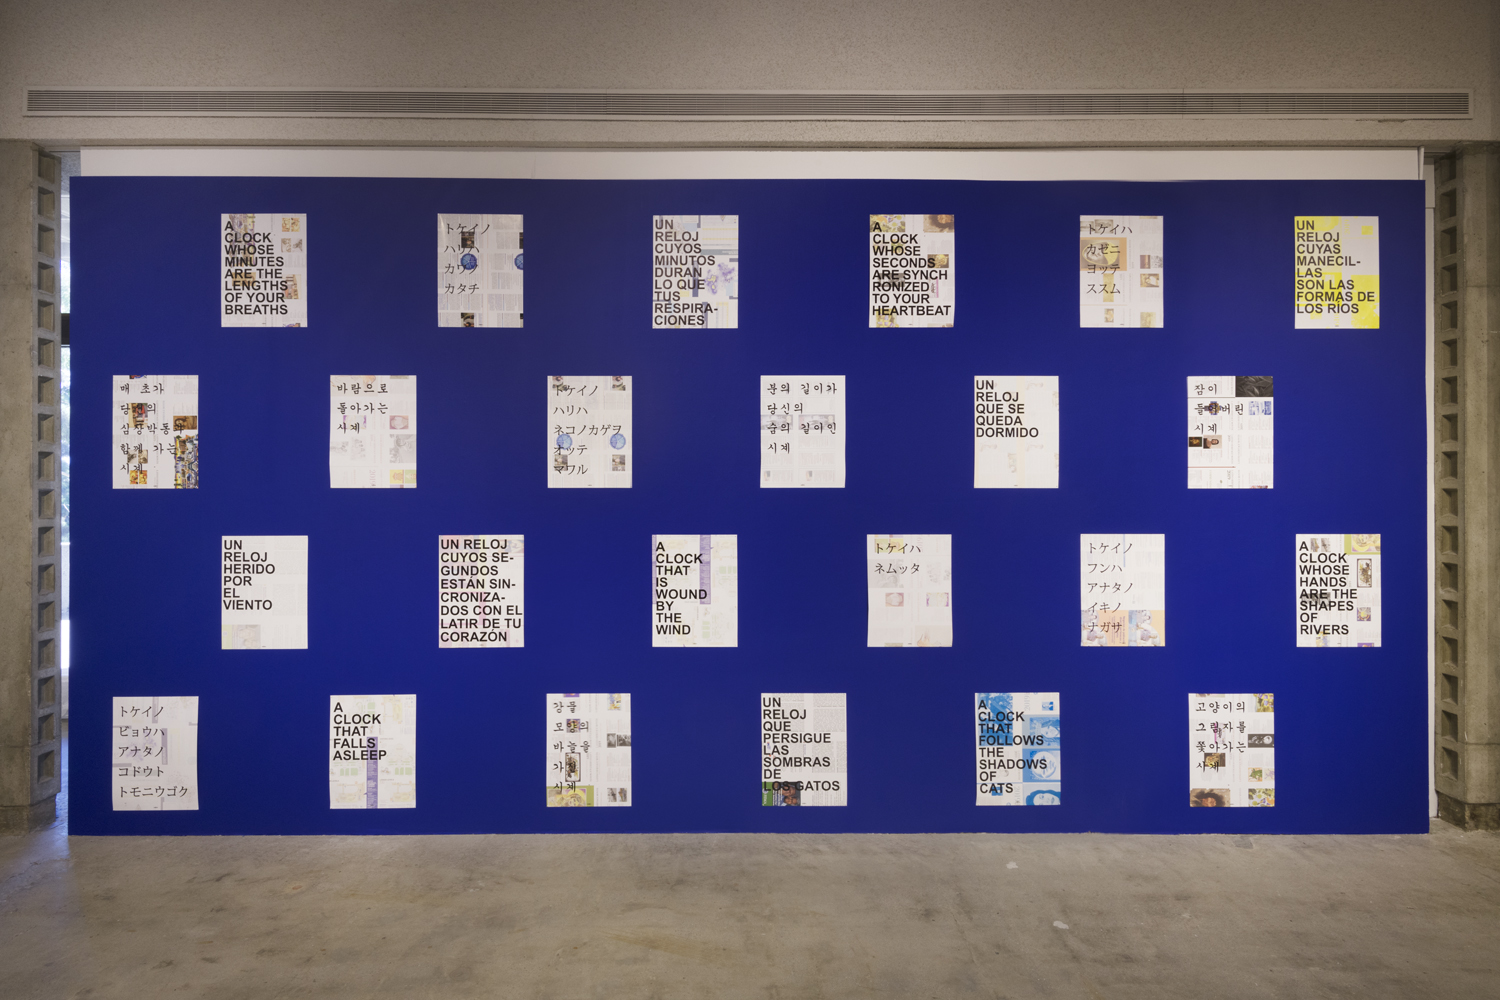 The art installation by the artist David Horvitz is comprised of a large, cobalt blue painted wall with twenty-four paper posters separated into four rows of six posters per row. The posters are hanging vertically and have various black lettering in different languages such as English, Spanish, Japanese and Korean.